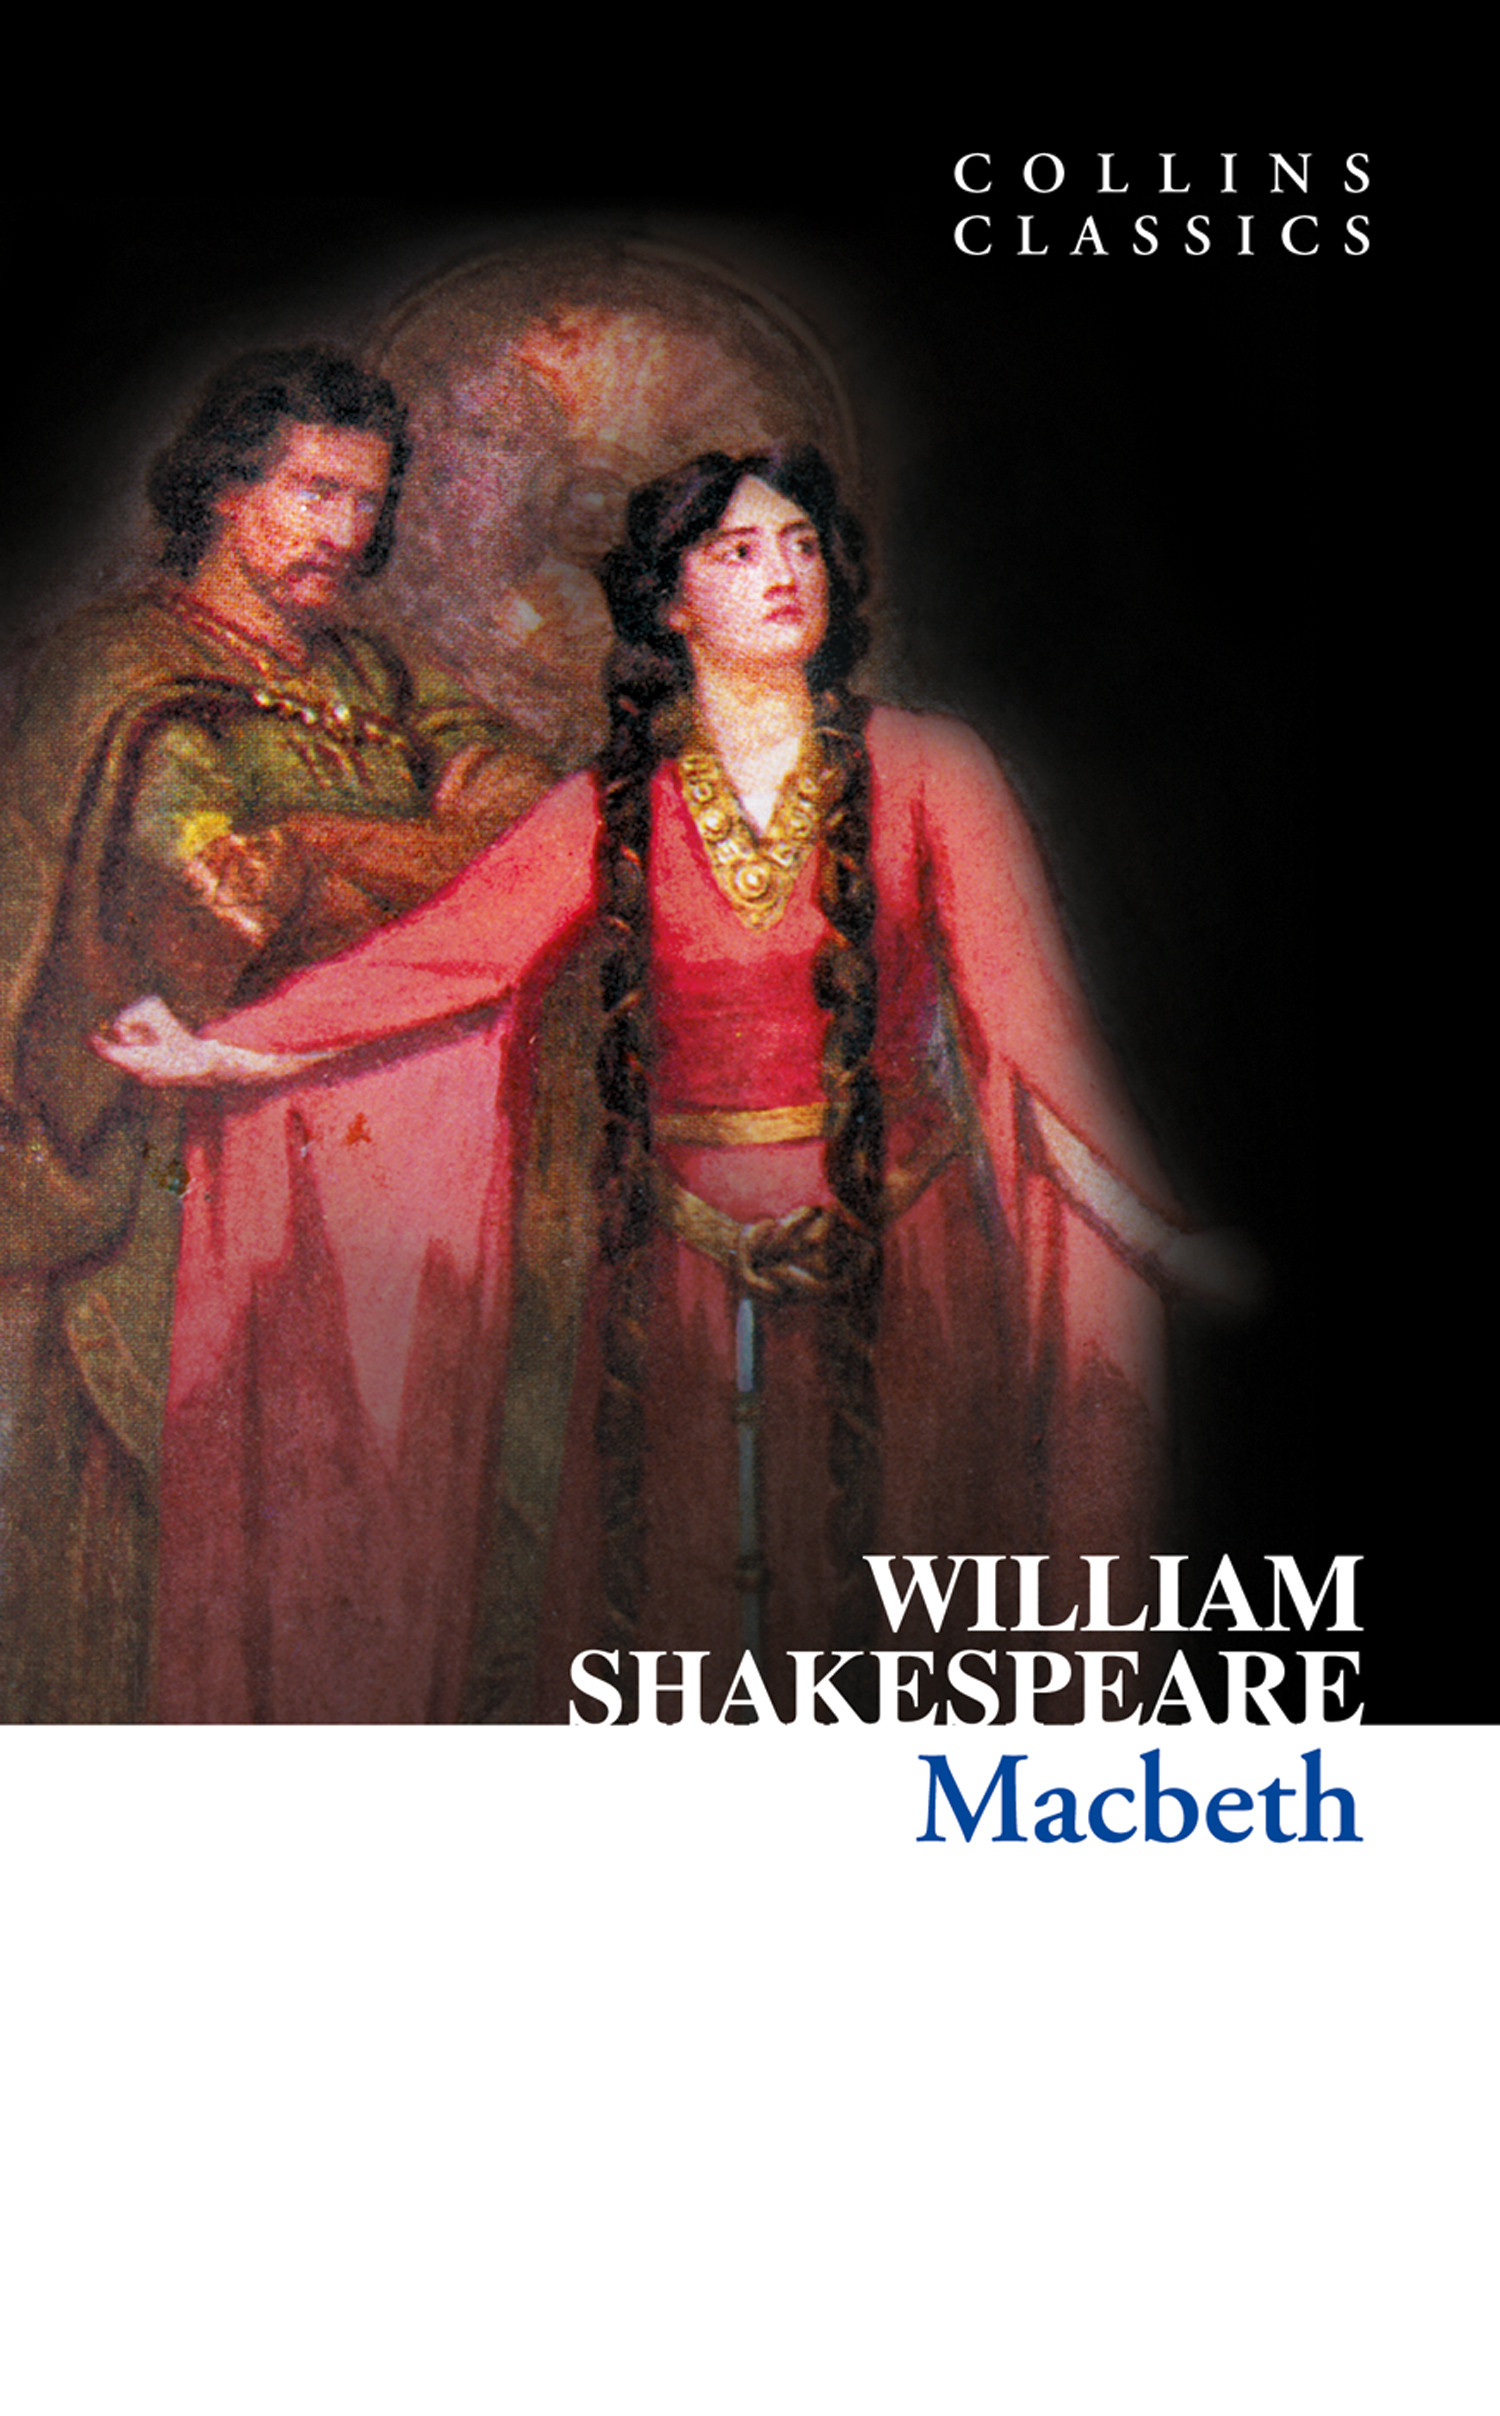 a picture of ambition and masculinity in macbeth by william shakespeare Macbeth is shakespeare's shortest tragedy it deals with issues that are relevant even today the overarching greed for power at any cost, the right from its famous opening scene which begins, thunder and lightning enter three witches the tragedy of macbeth by william shakespeare.